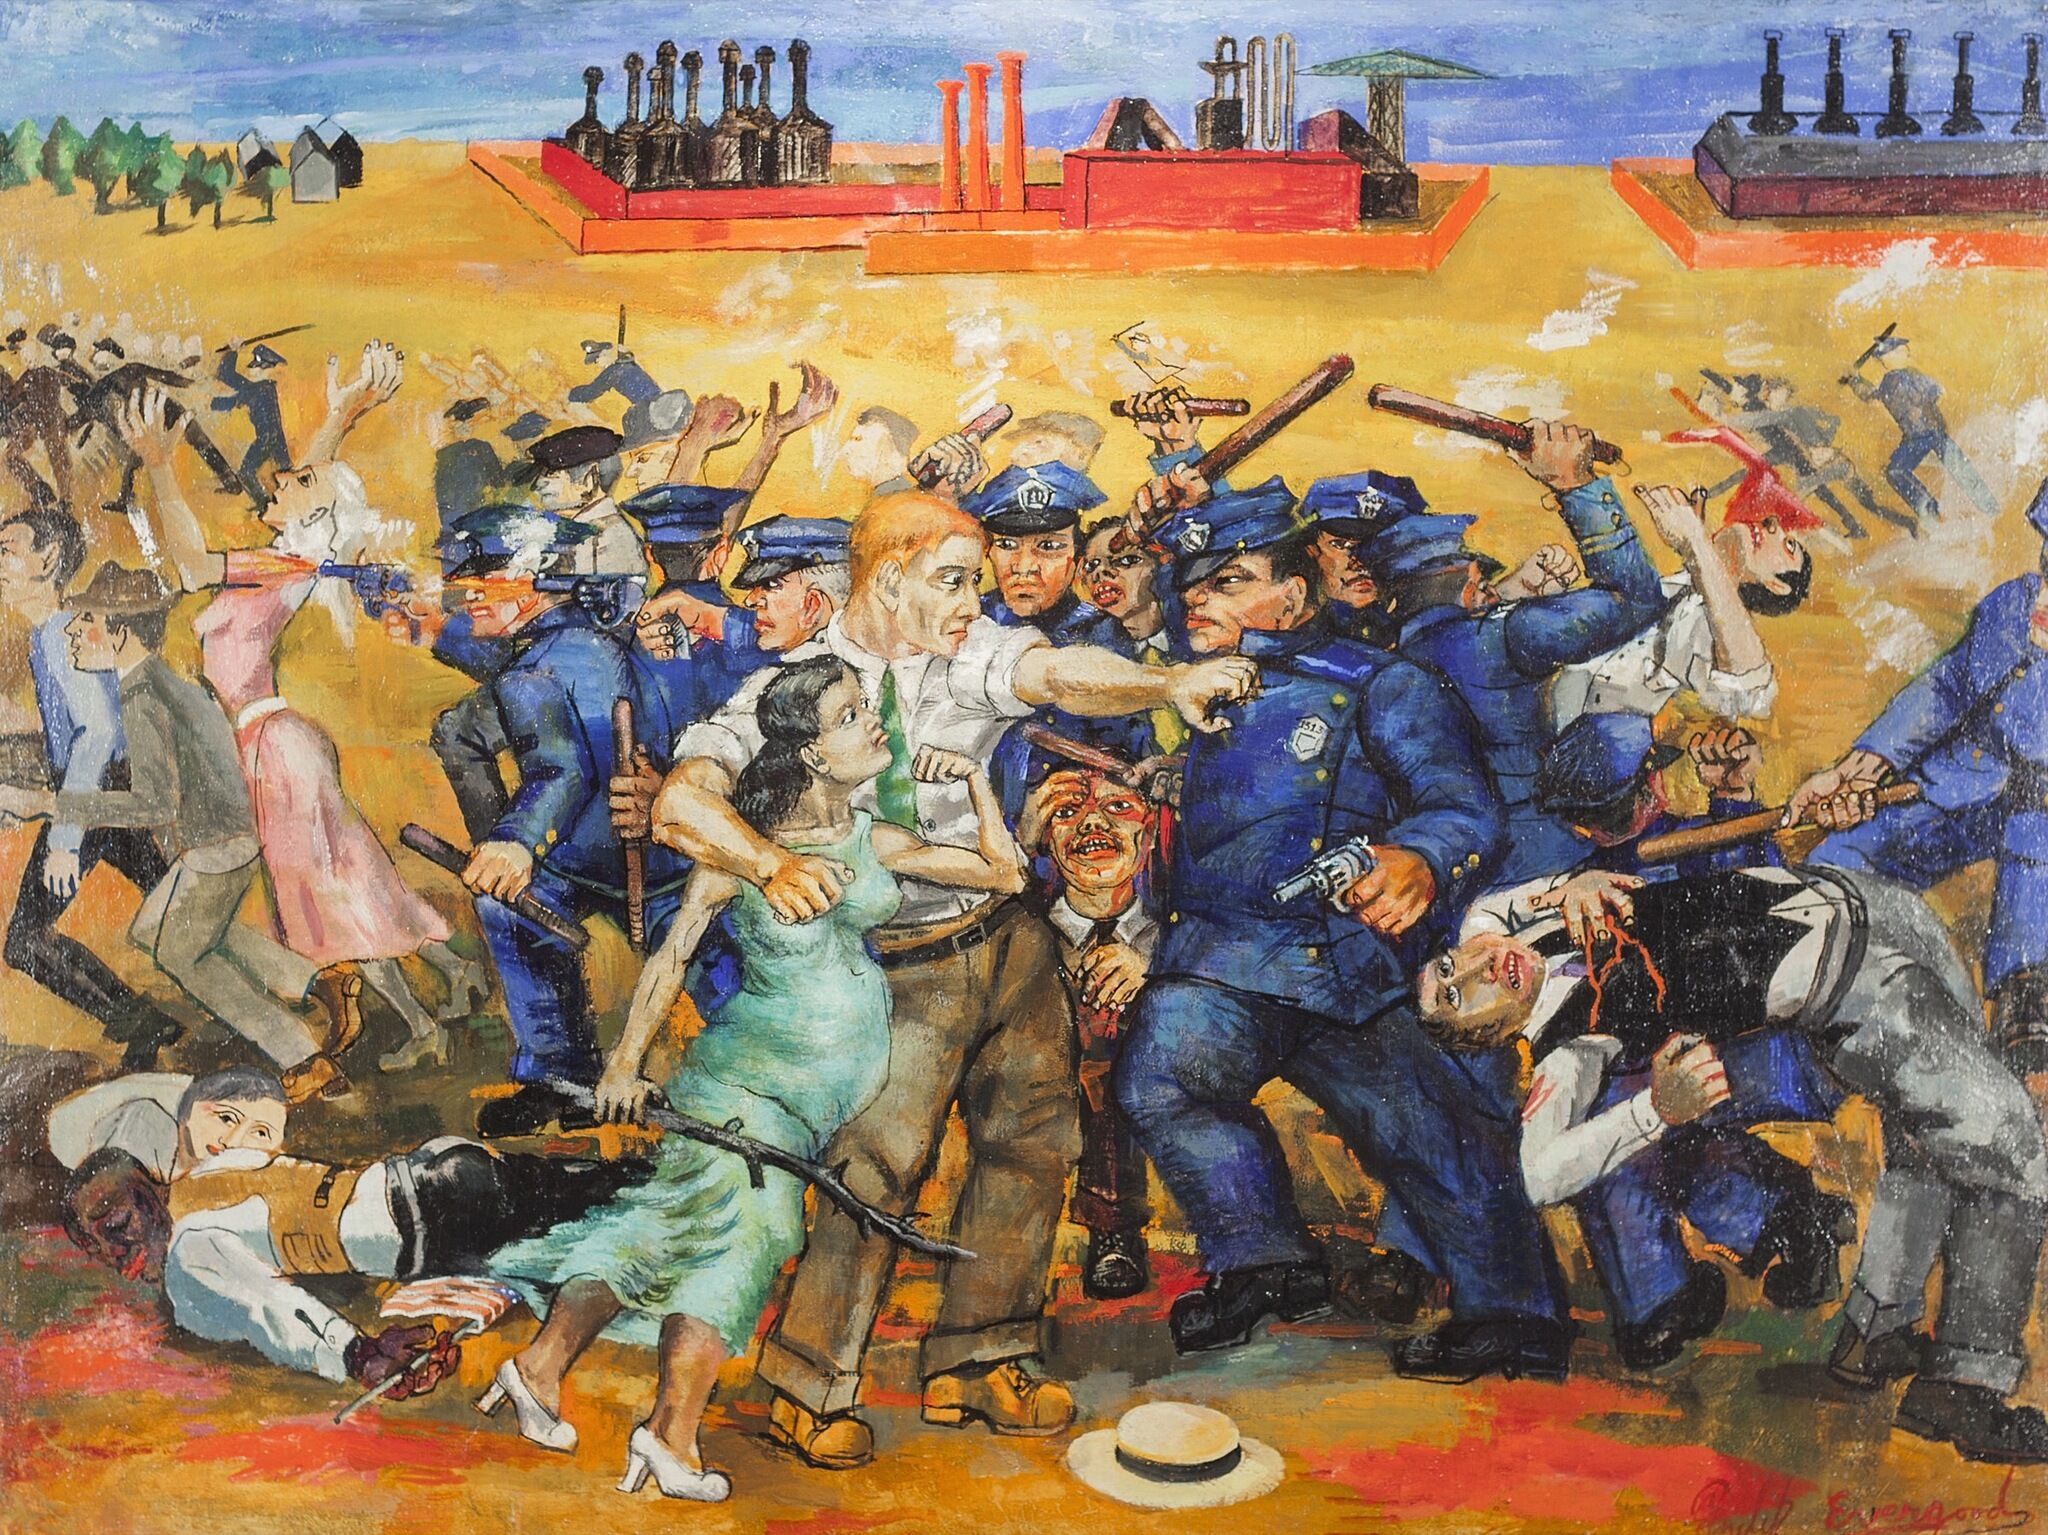 A painting depicting a gruesome clash between police and a group of people.